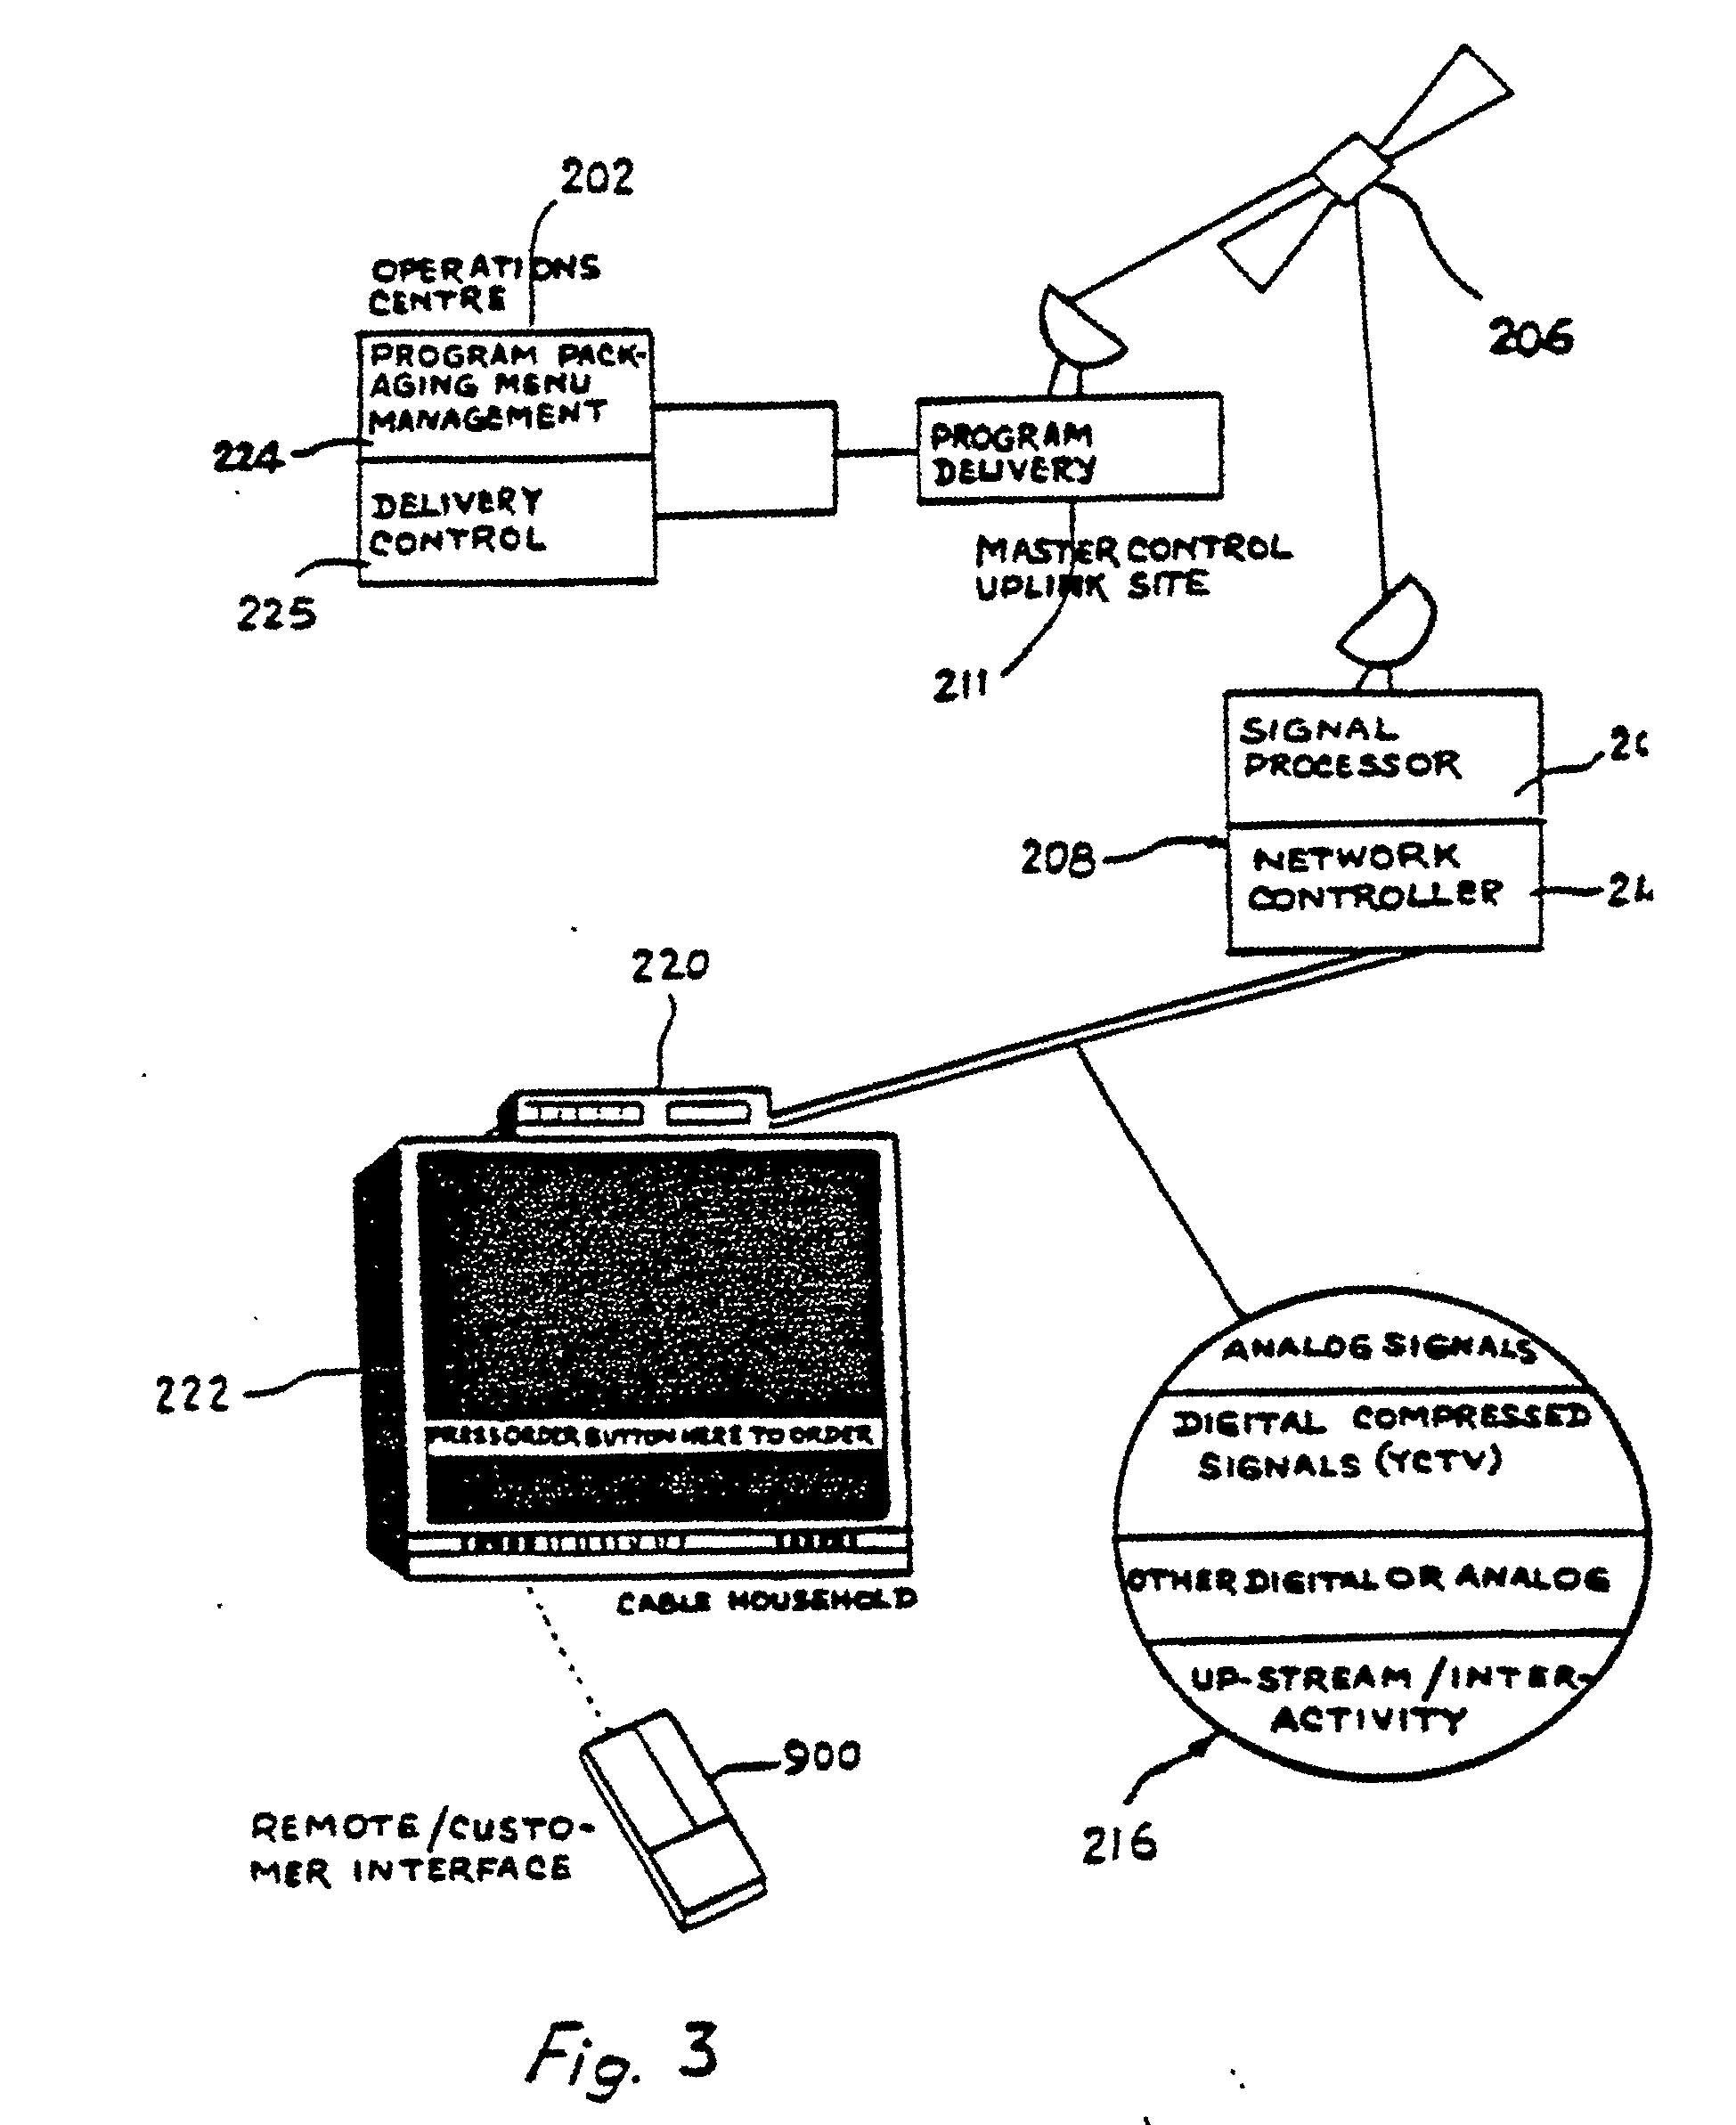 Ep0946060b1 menu driven television program access system and method patents